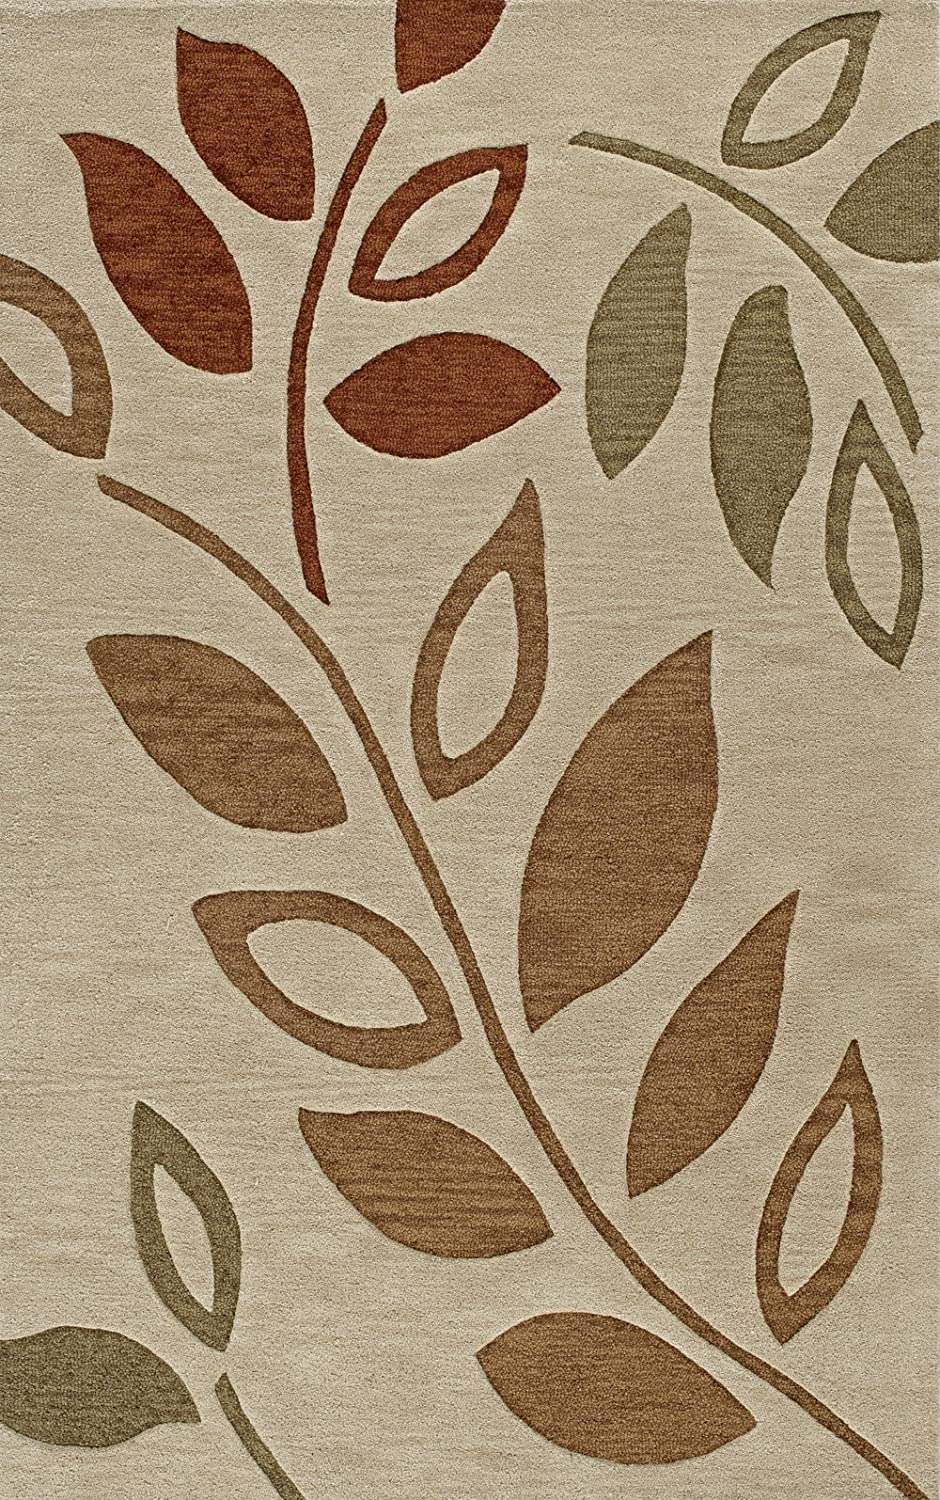 Dalyn Rugs Transitions 2021 new Square Rug 10' Discount mail order